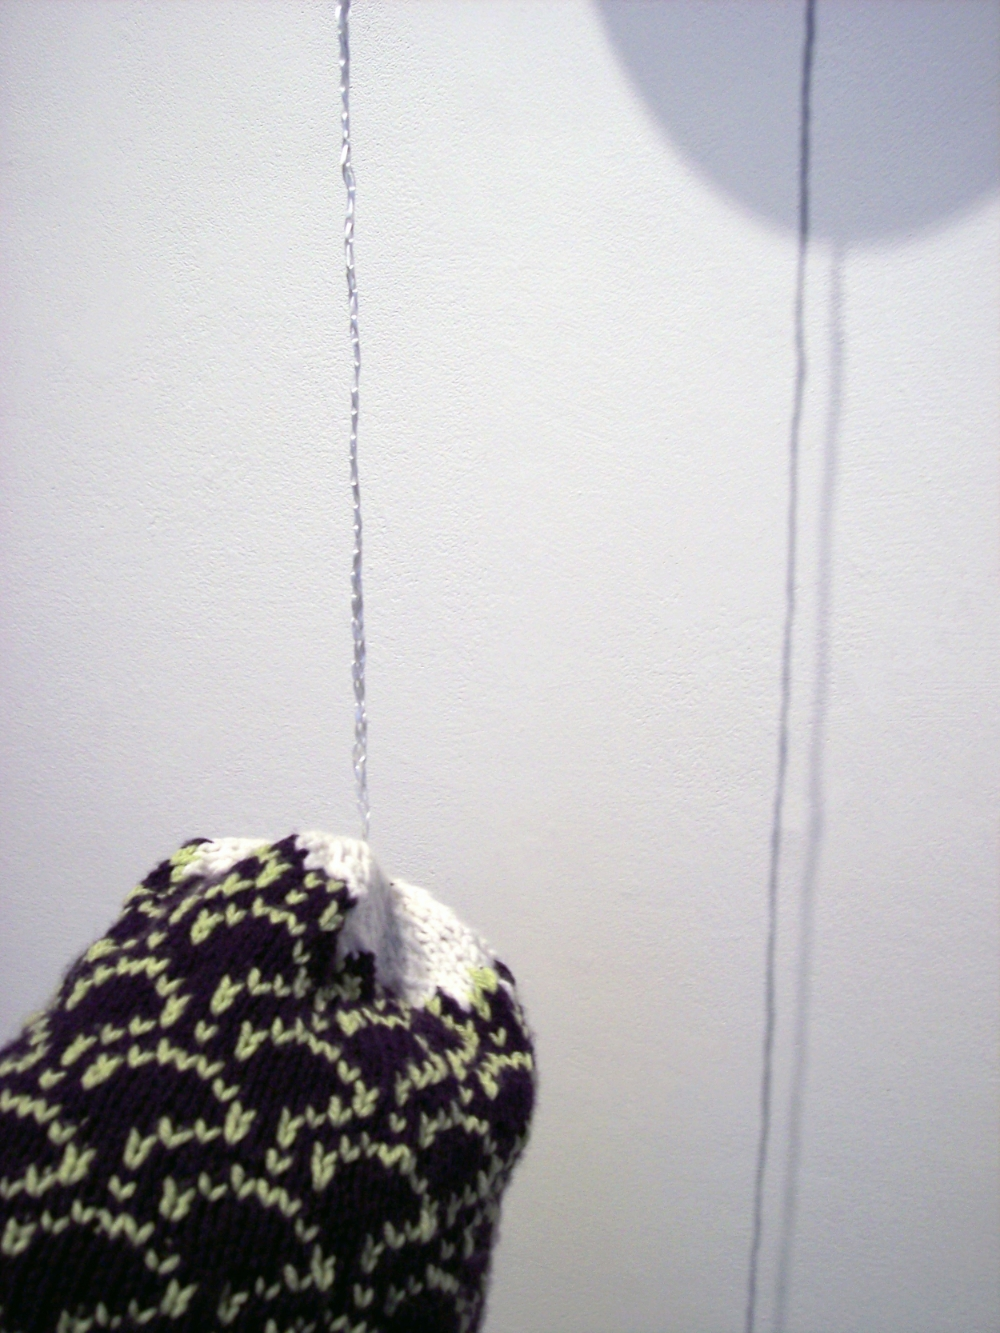 Thinking Cap (detail)